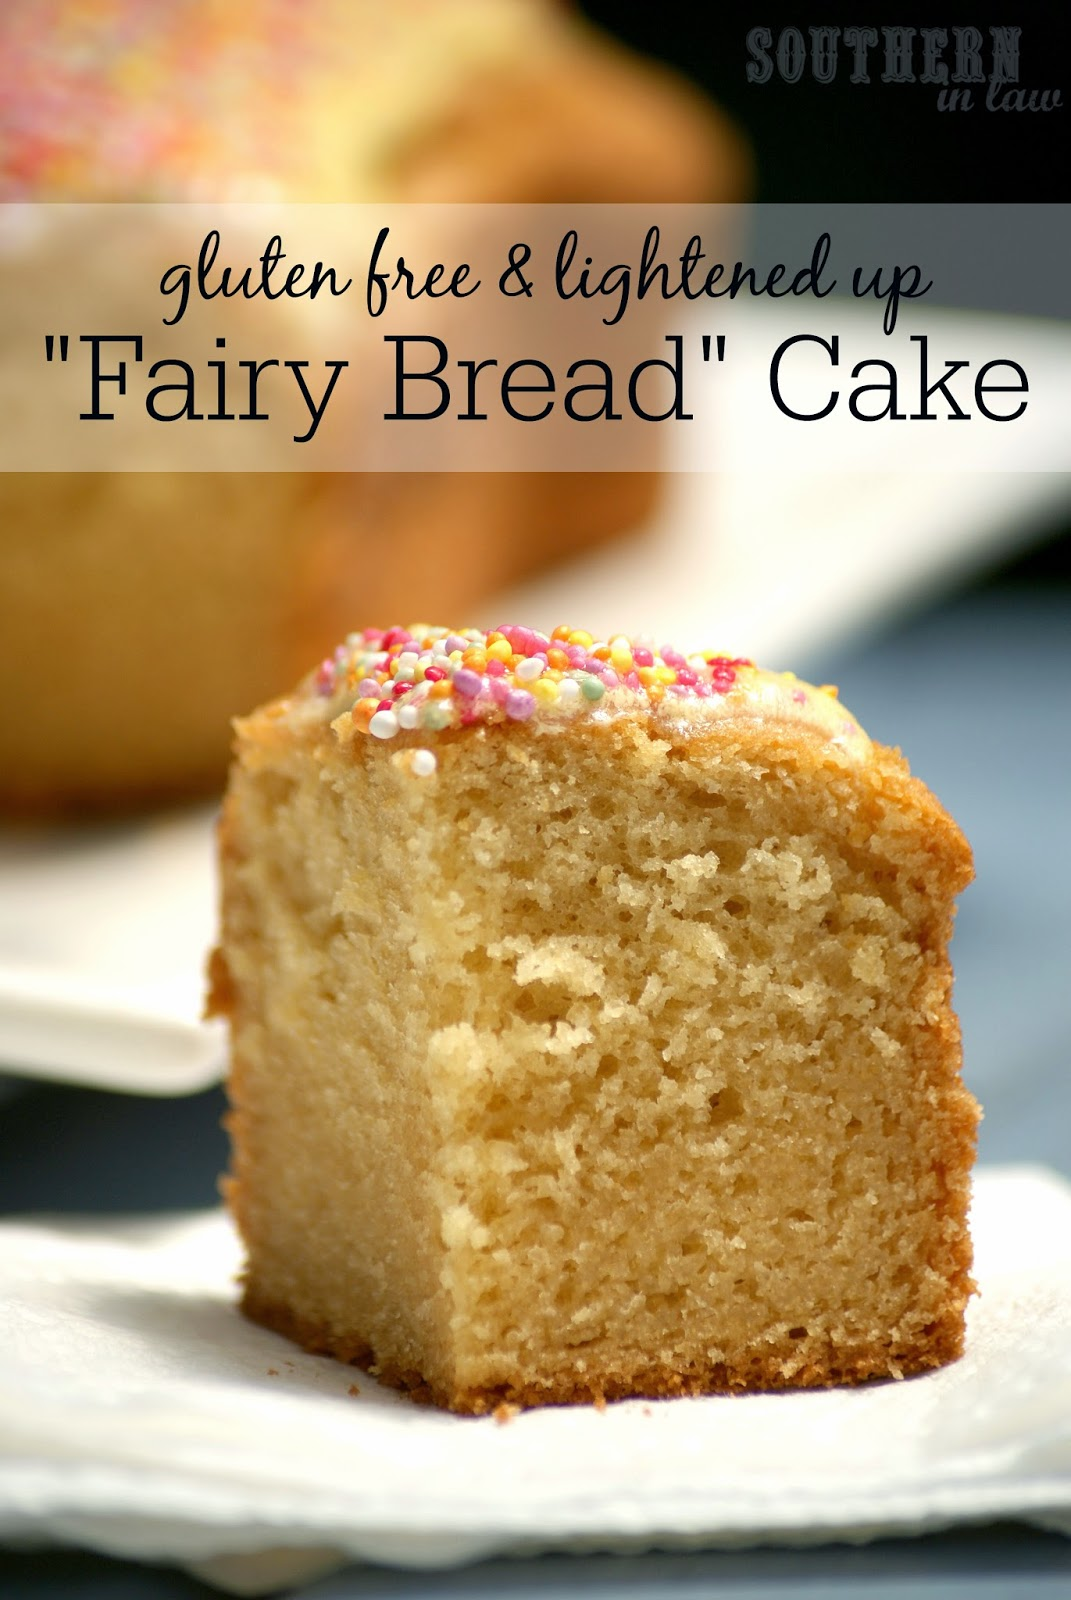 Southern In Law Recipe Lightened Up Quot Fairy Bread Quot Cake